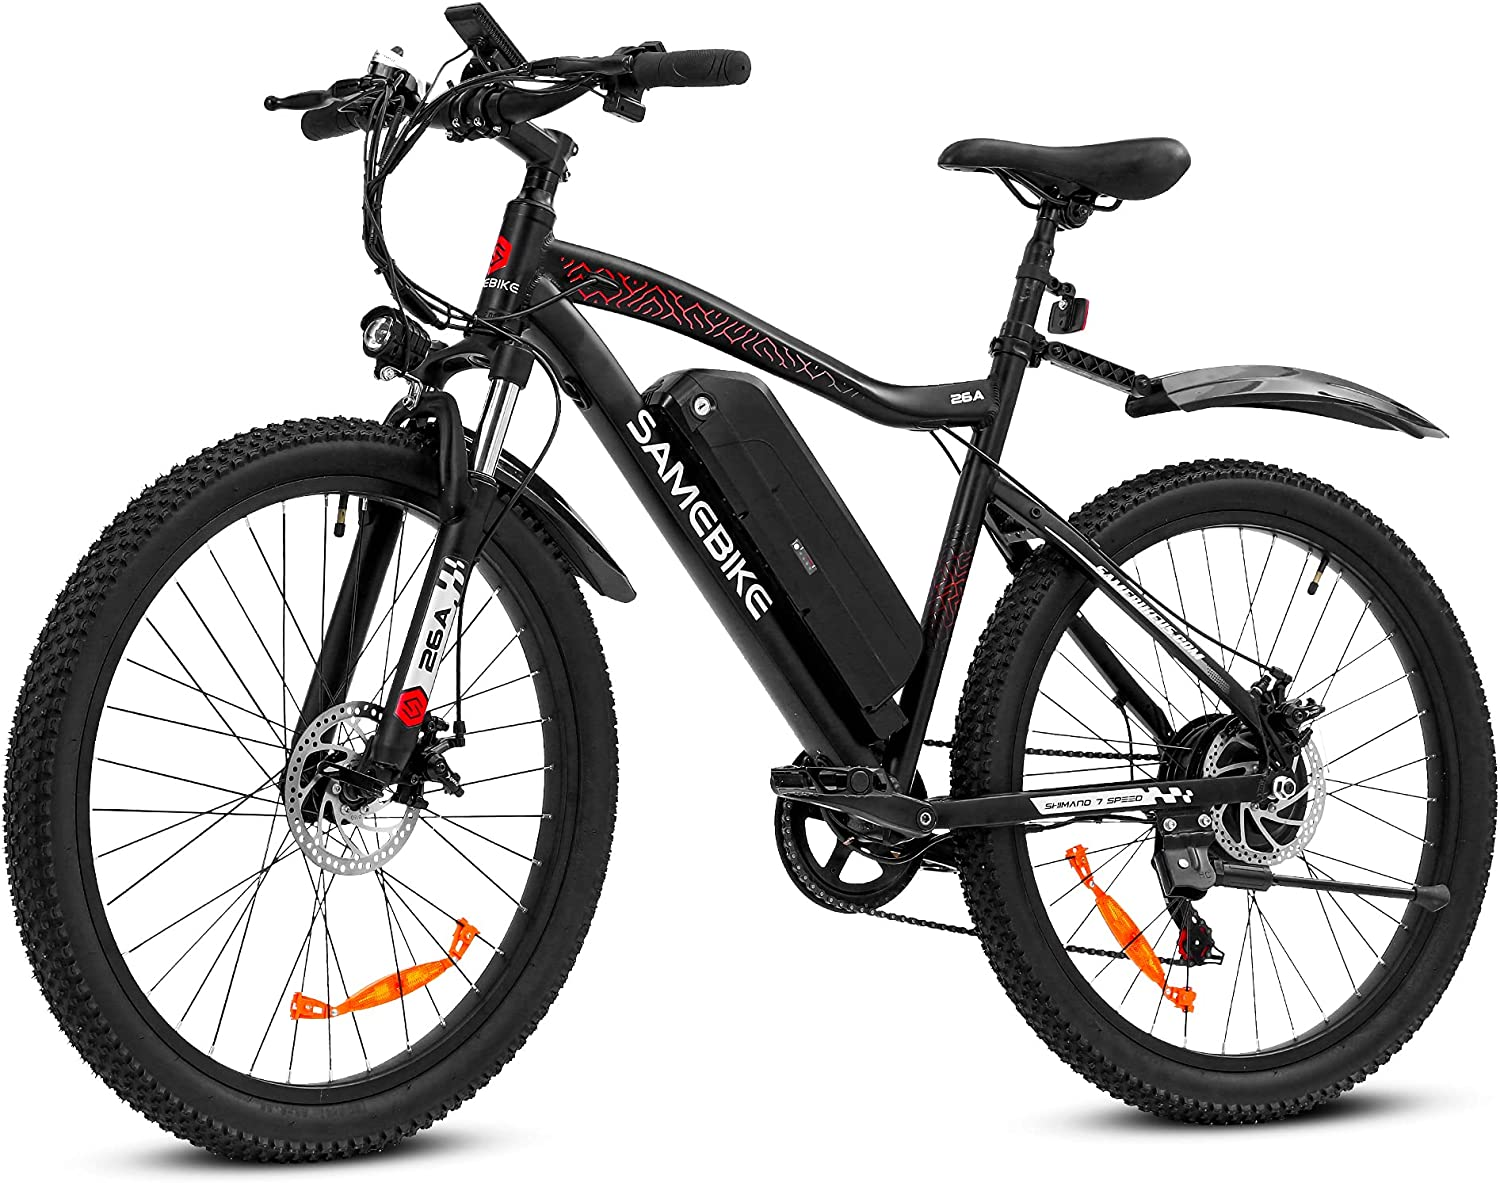 SAMEBIKE Electric Mountain Bike Upgraded Manufacturer regenerated product 500W Mph Ebike 25 National products Motor